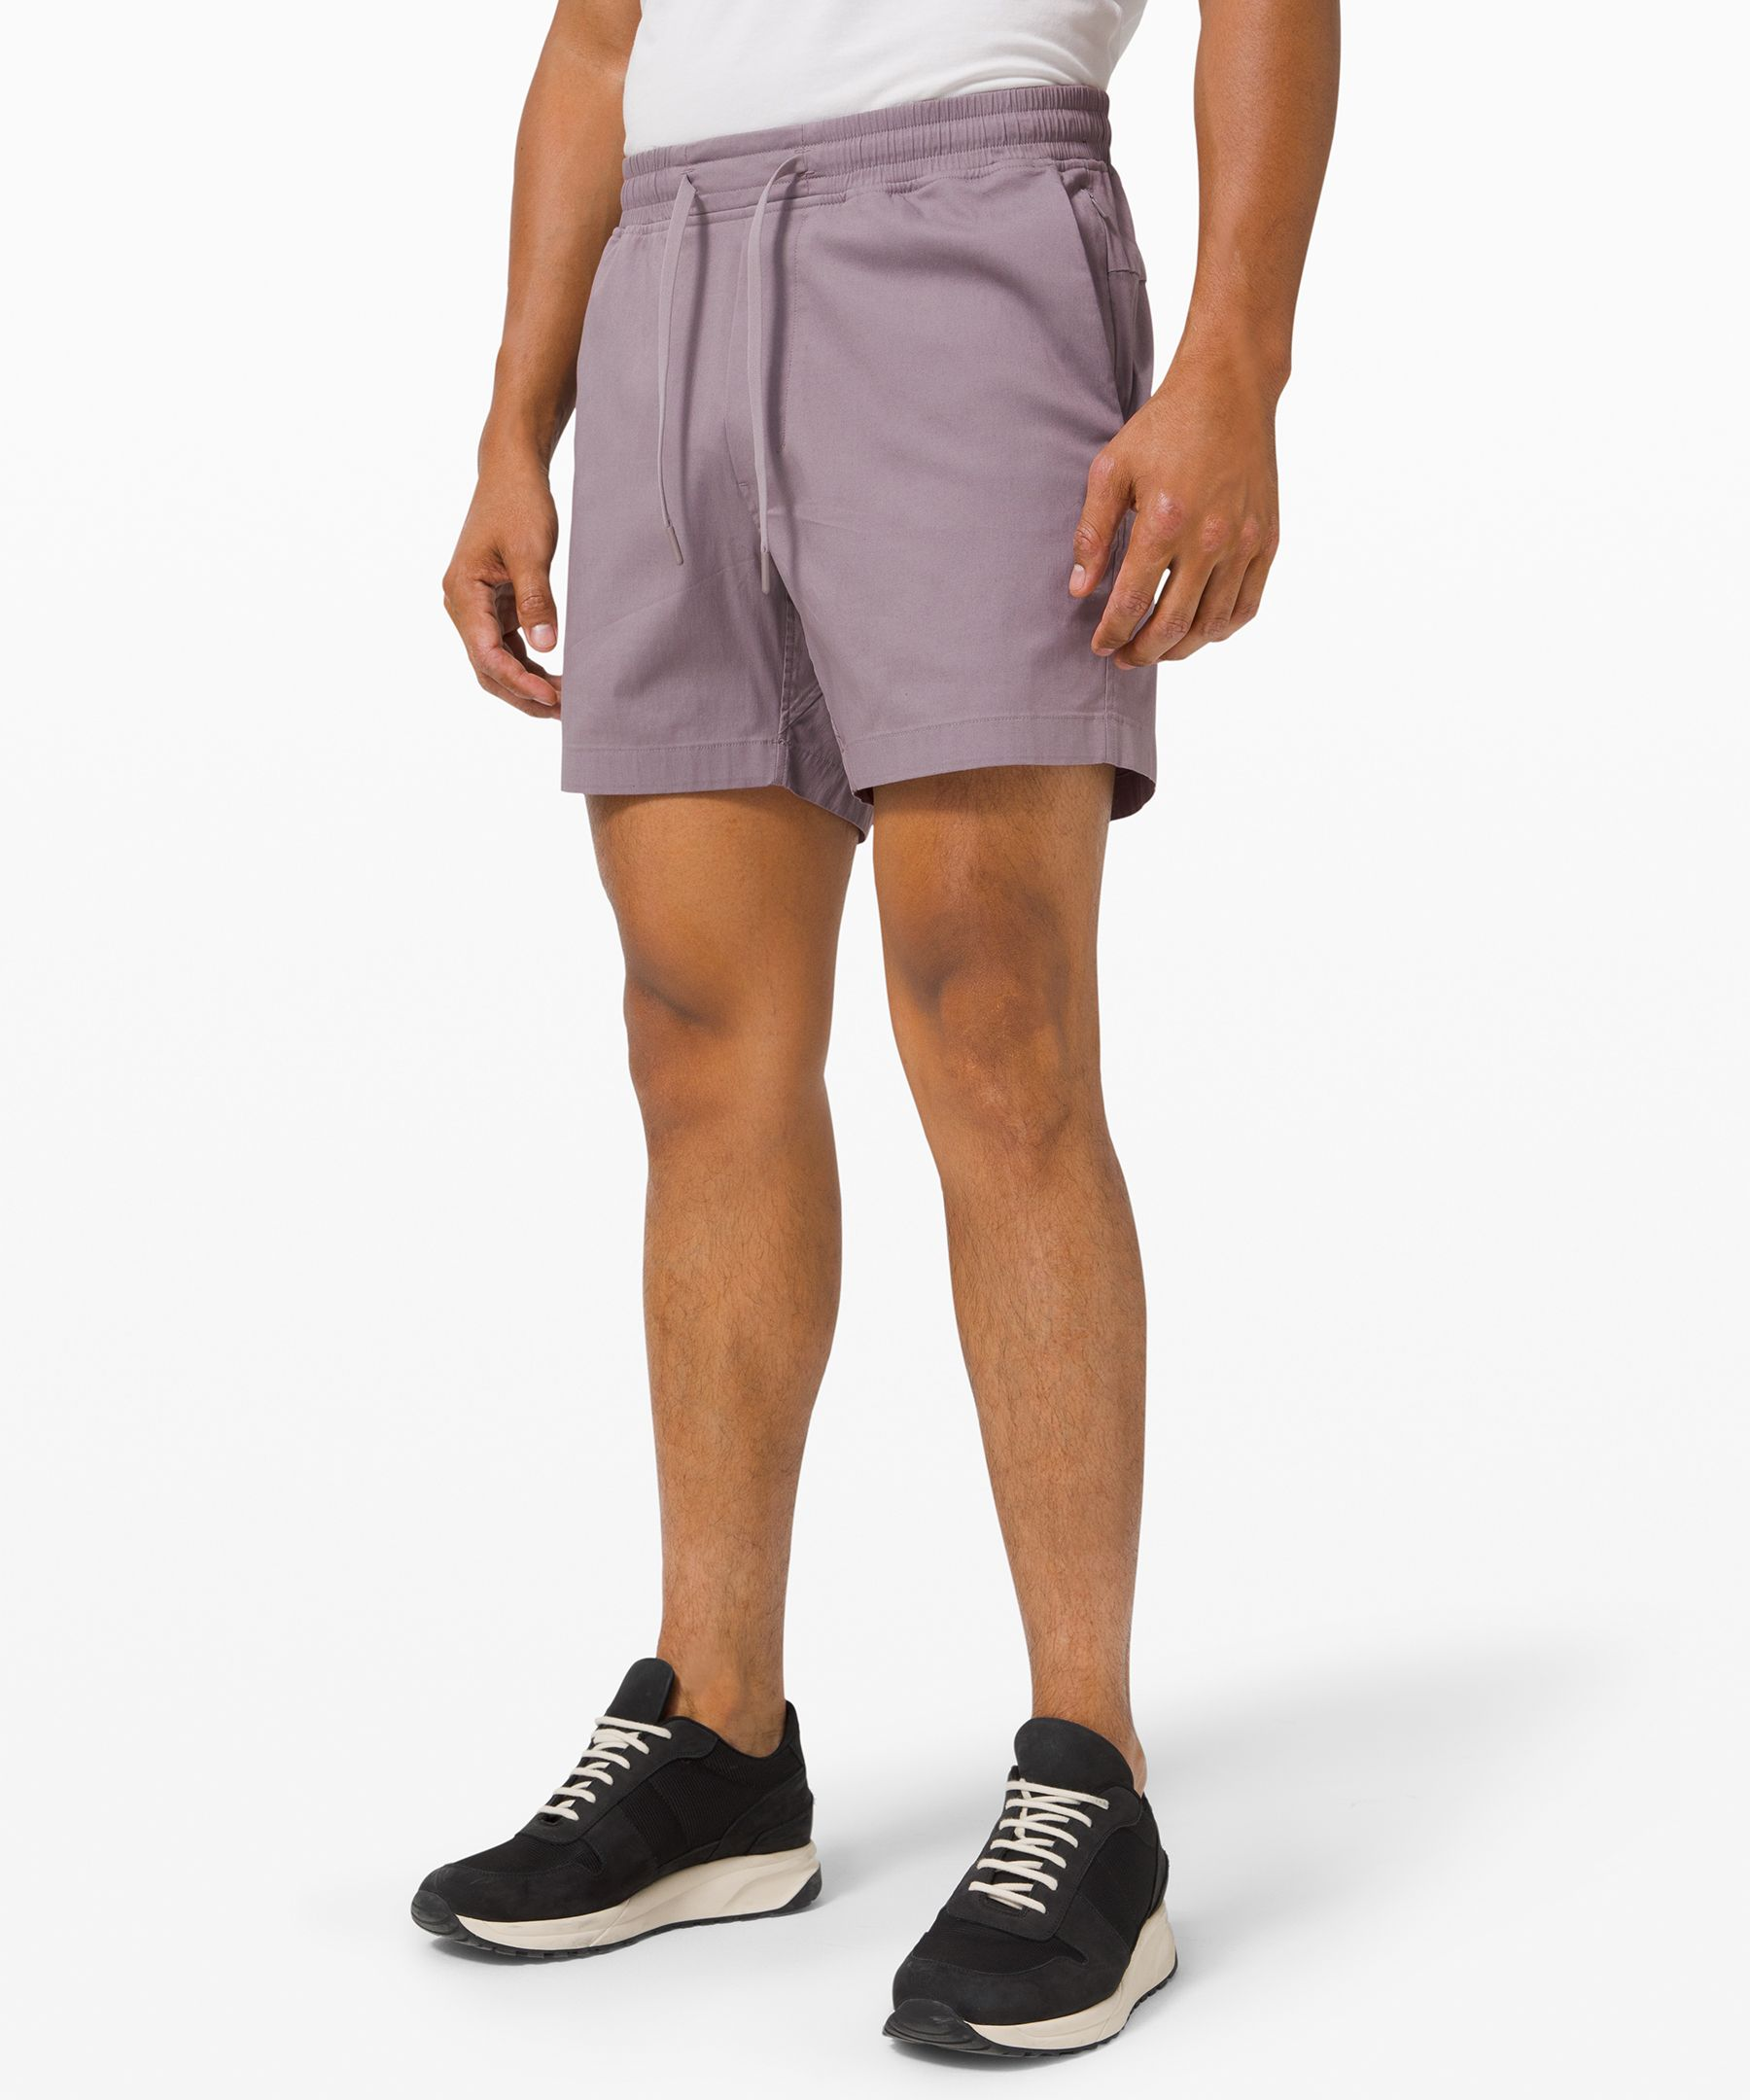 These casual shorts are made  for long-weekend vibes any day  of the week.